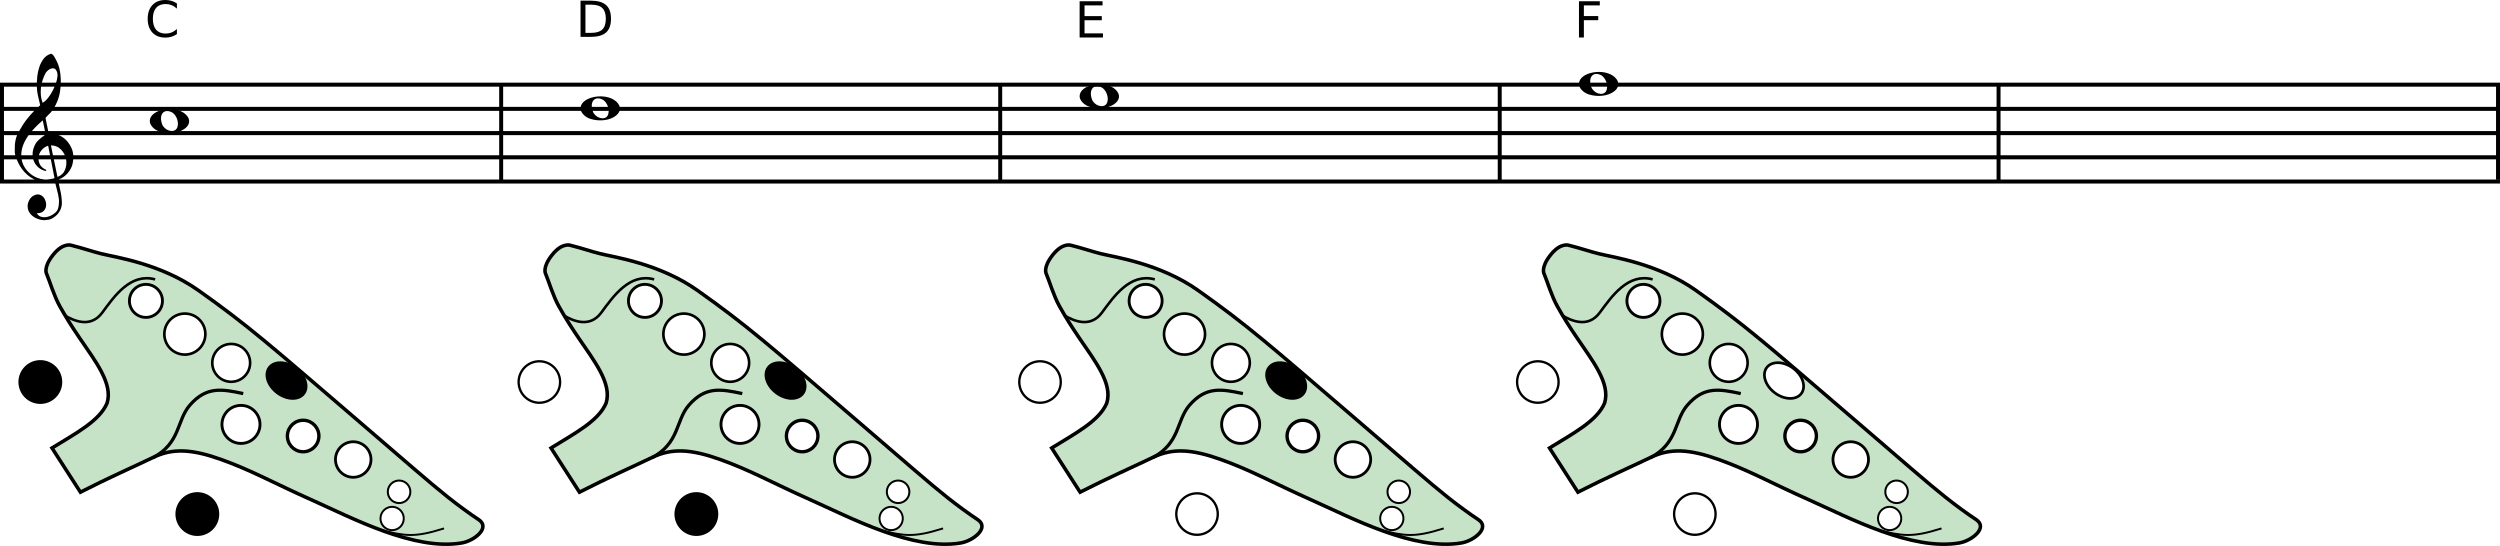 A diagram showing the fingerings of an alto C ocarina high notes with Asian system  C: Lt Rt Lp D: Rt Lp E: Lp F: (all open)